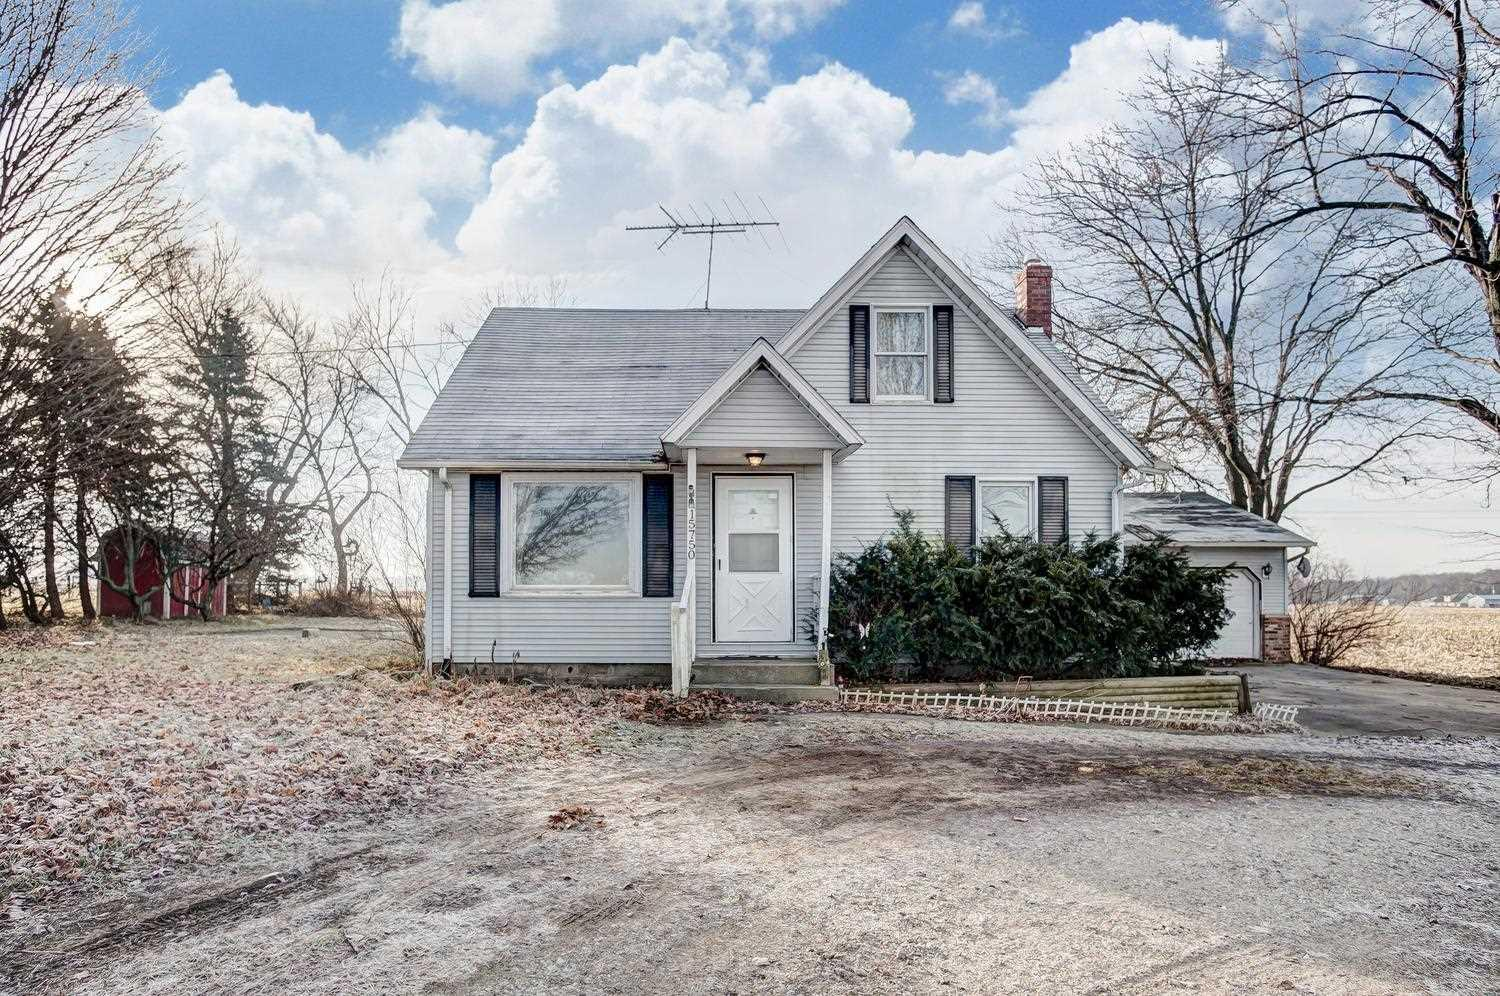 15750 Us 20 Middlebury, IN 46540